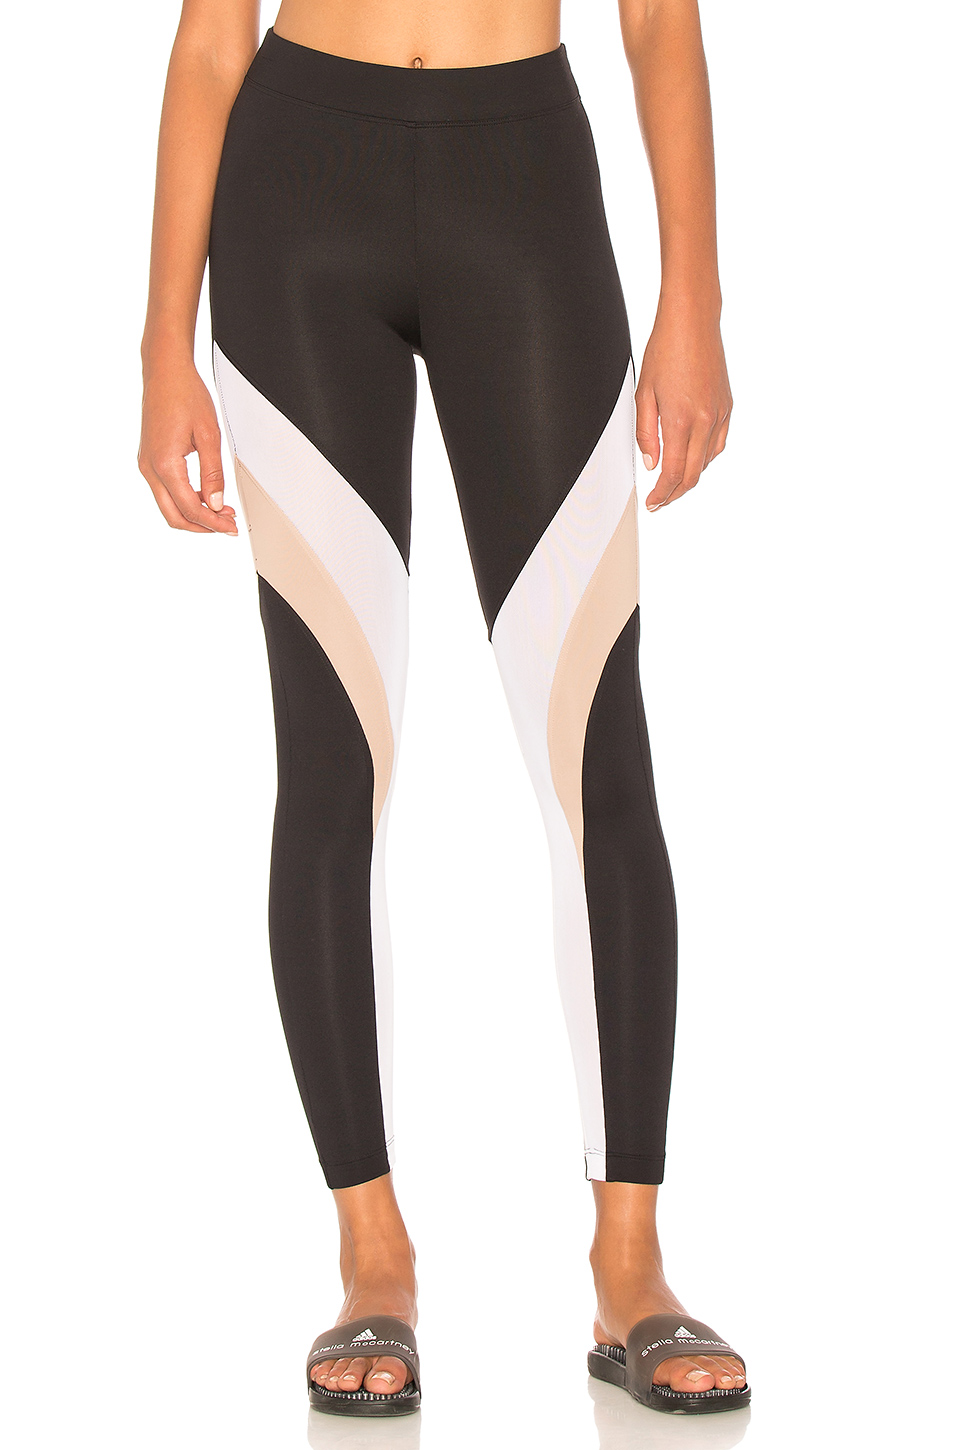 KORAL Frame Legging in Black & Bisque